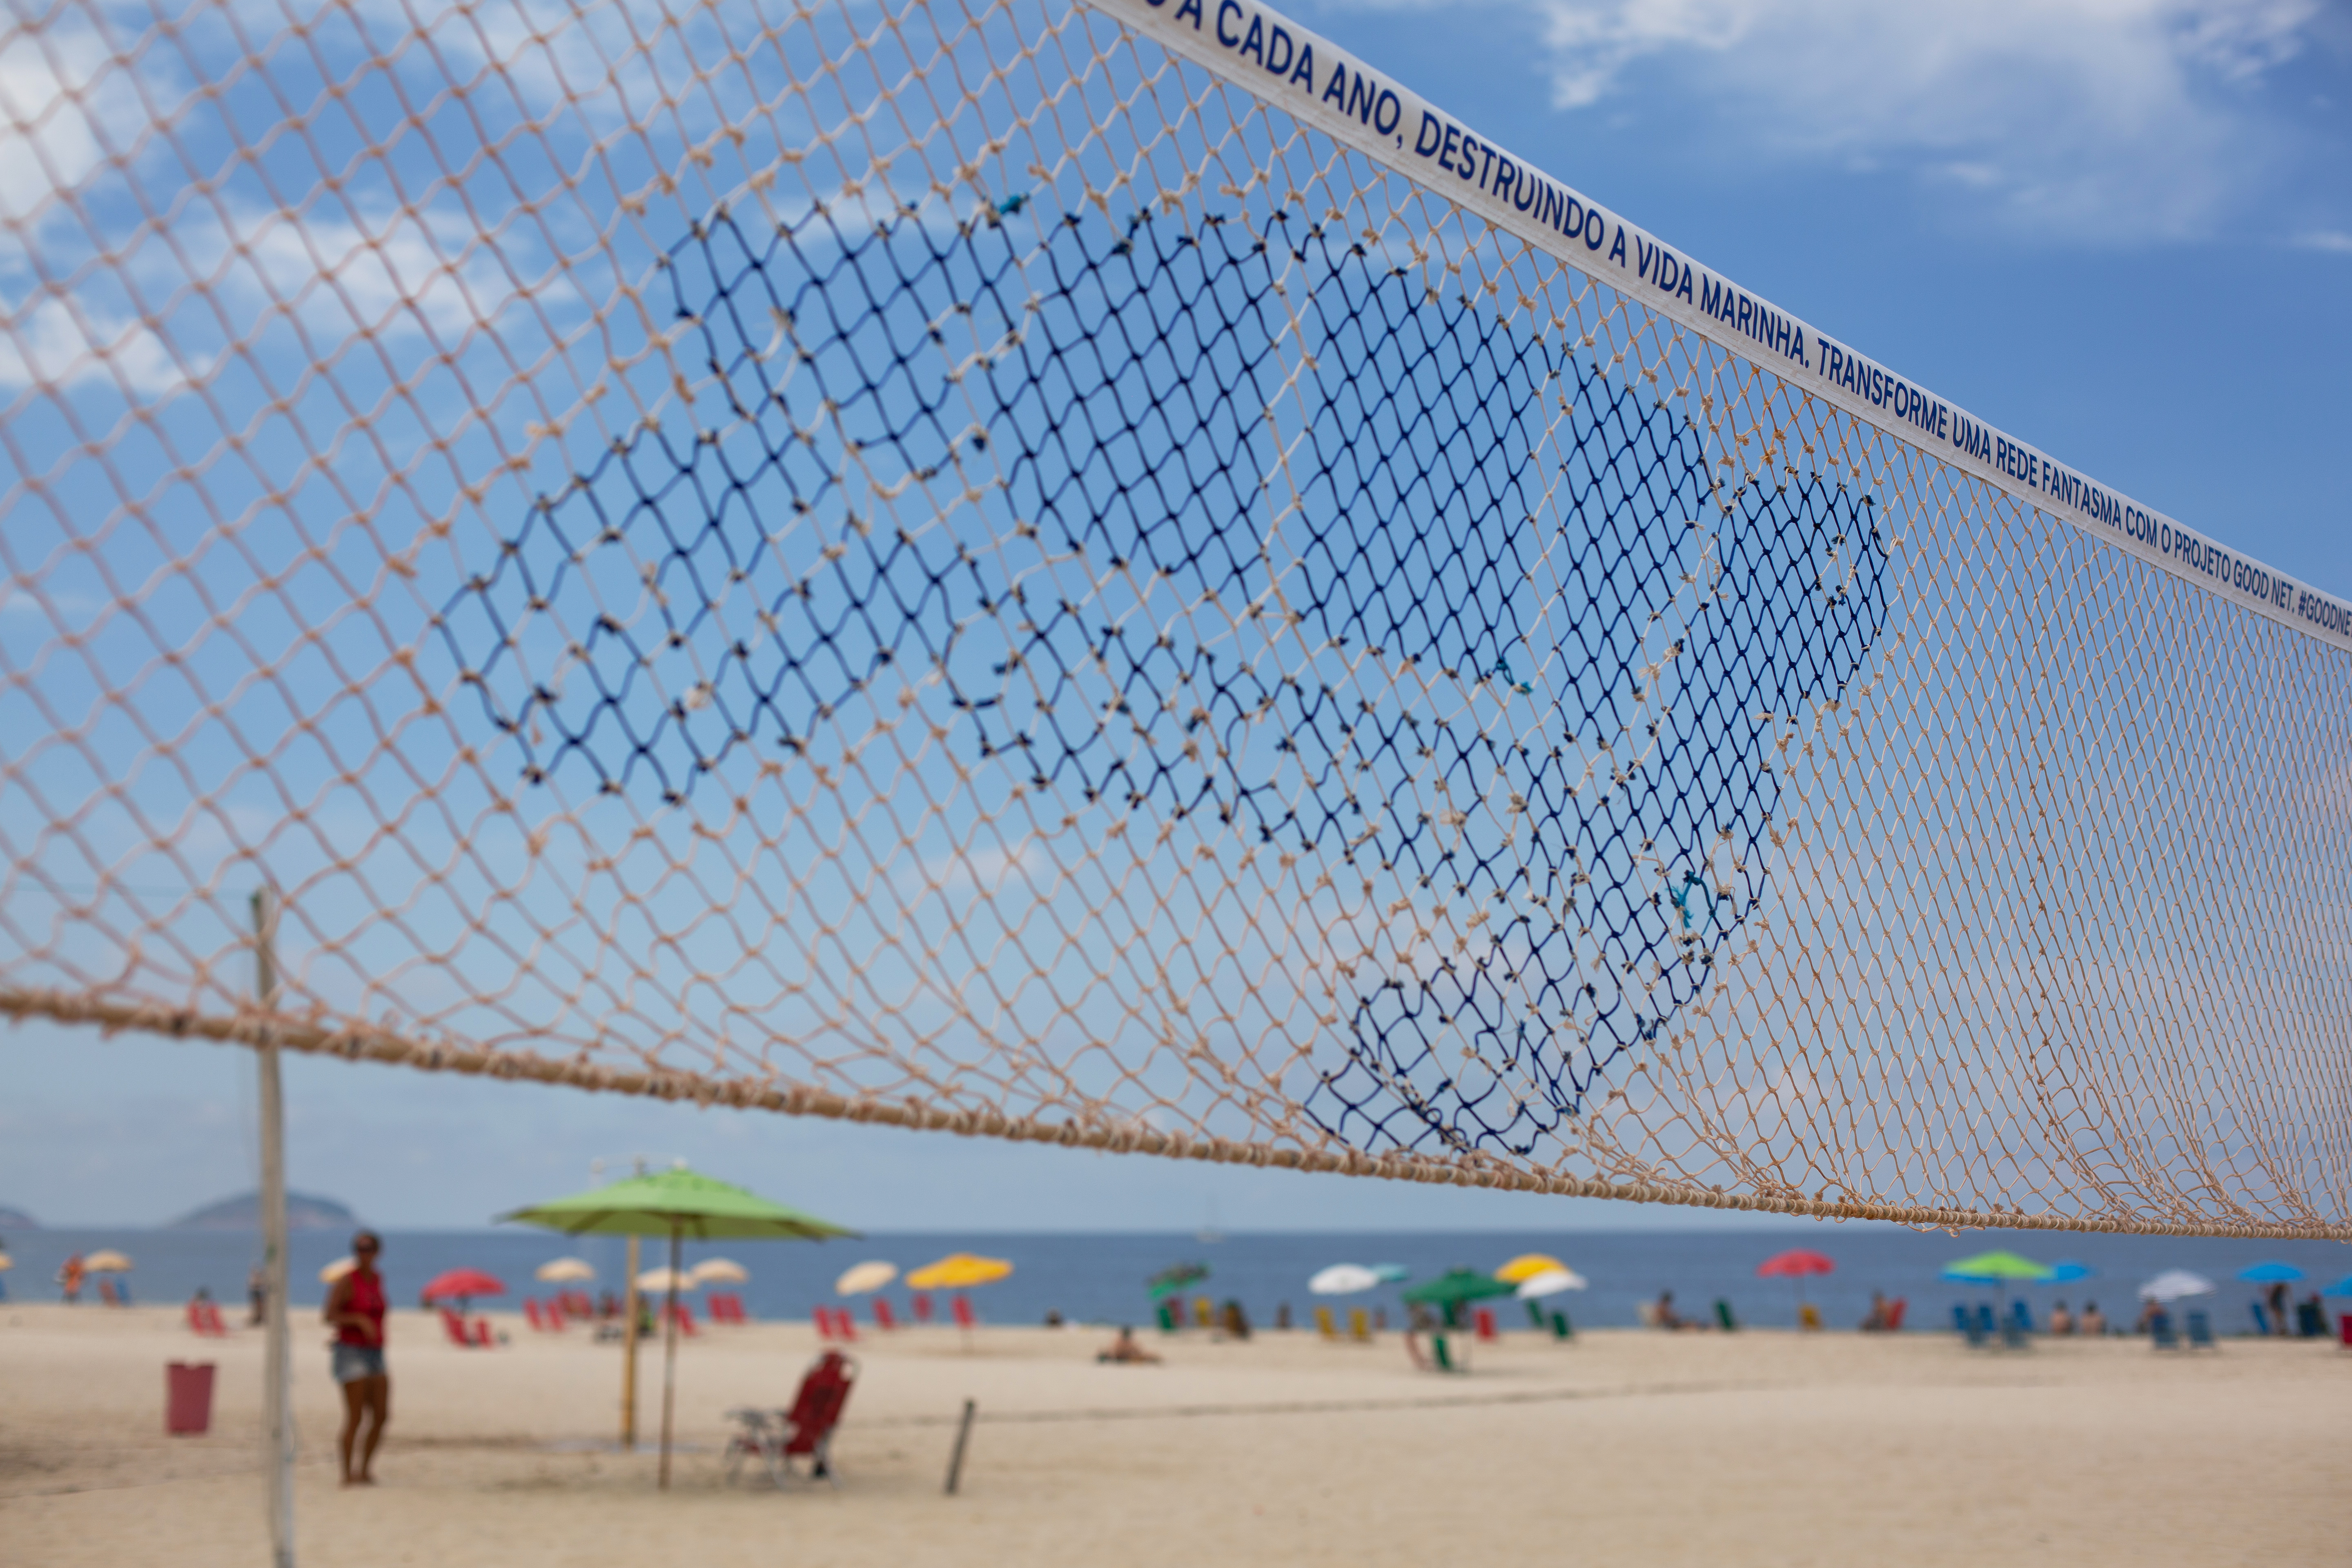 Good Net Volleyball Sustainability Project launched on Copacabana Beach